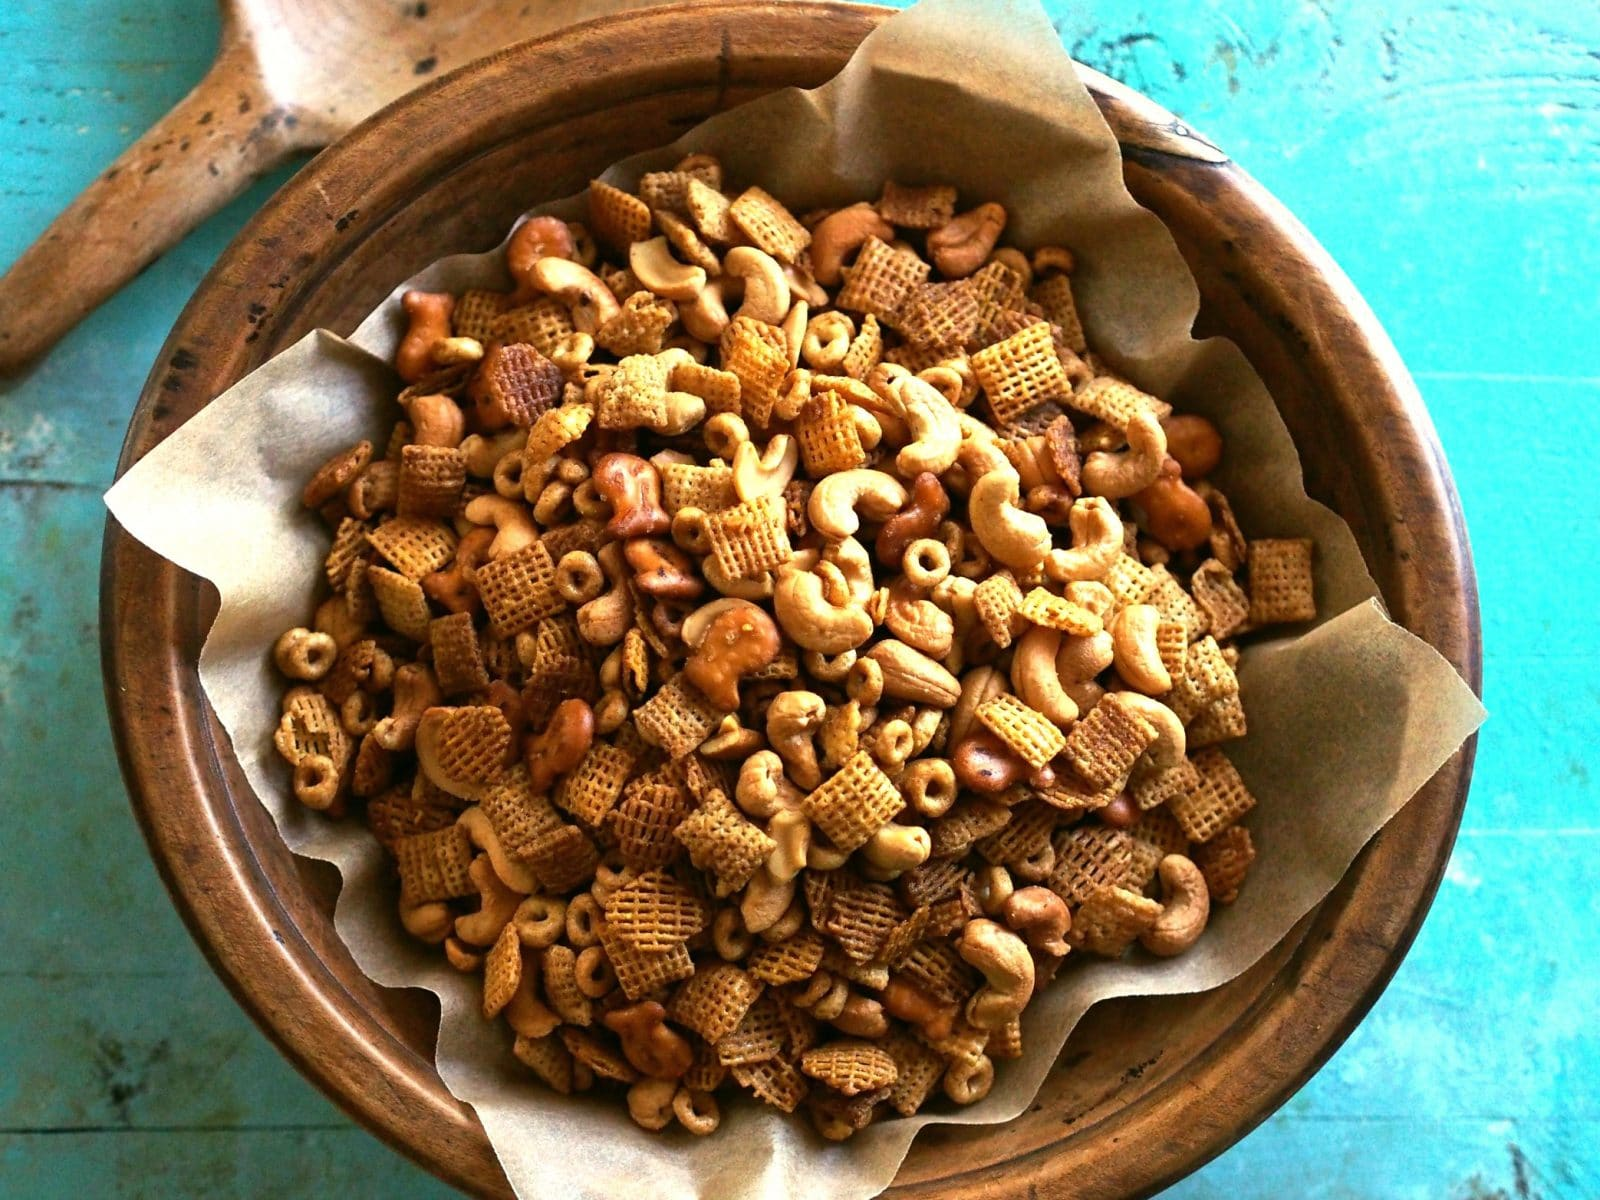 My Famous Chex Party Mix. Original and Honey flavored Chex and Cheerios, cashews and pretzels combined with the perfect seasonings. This stuff is addicting. Simply Sated